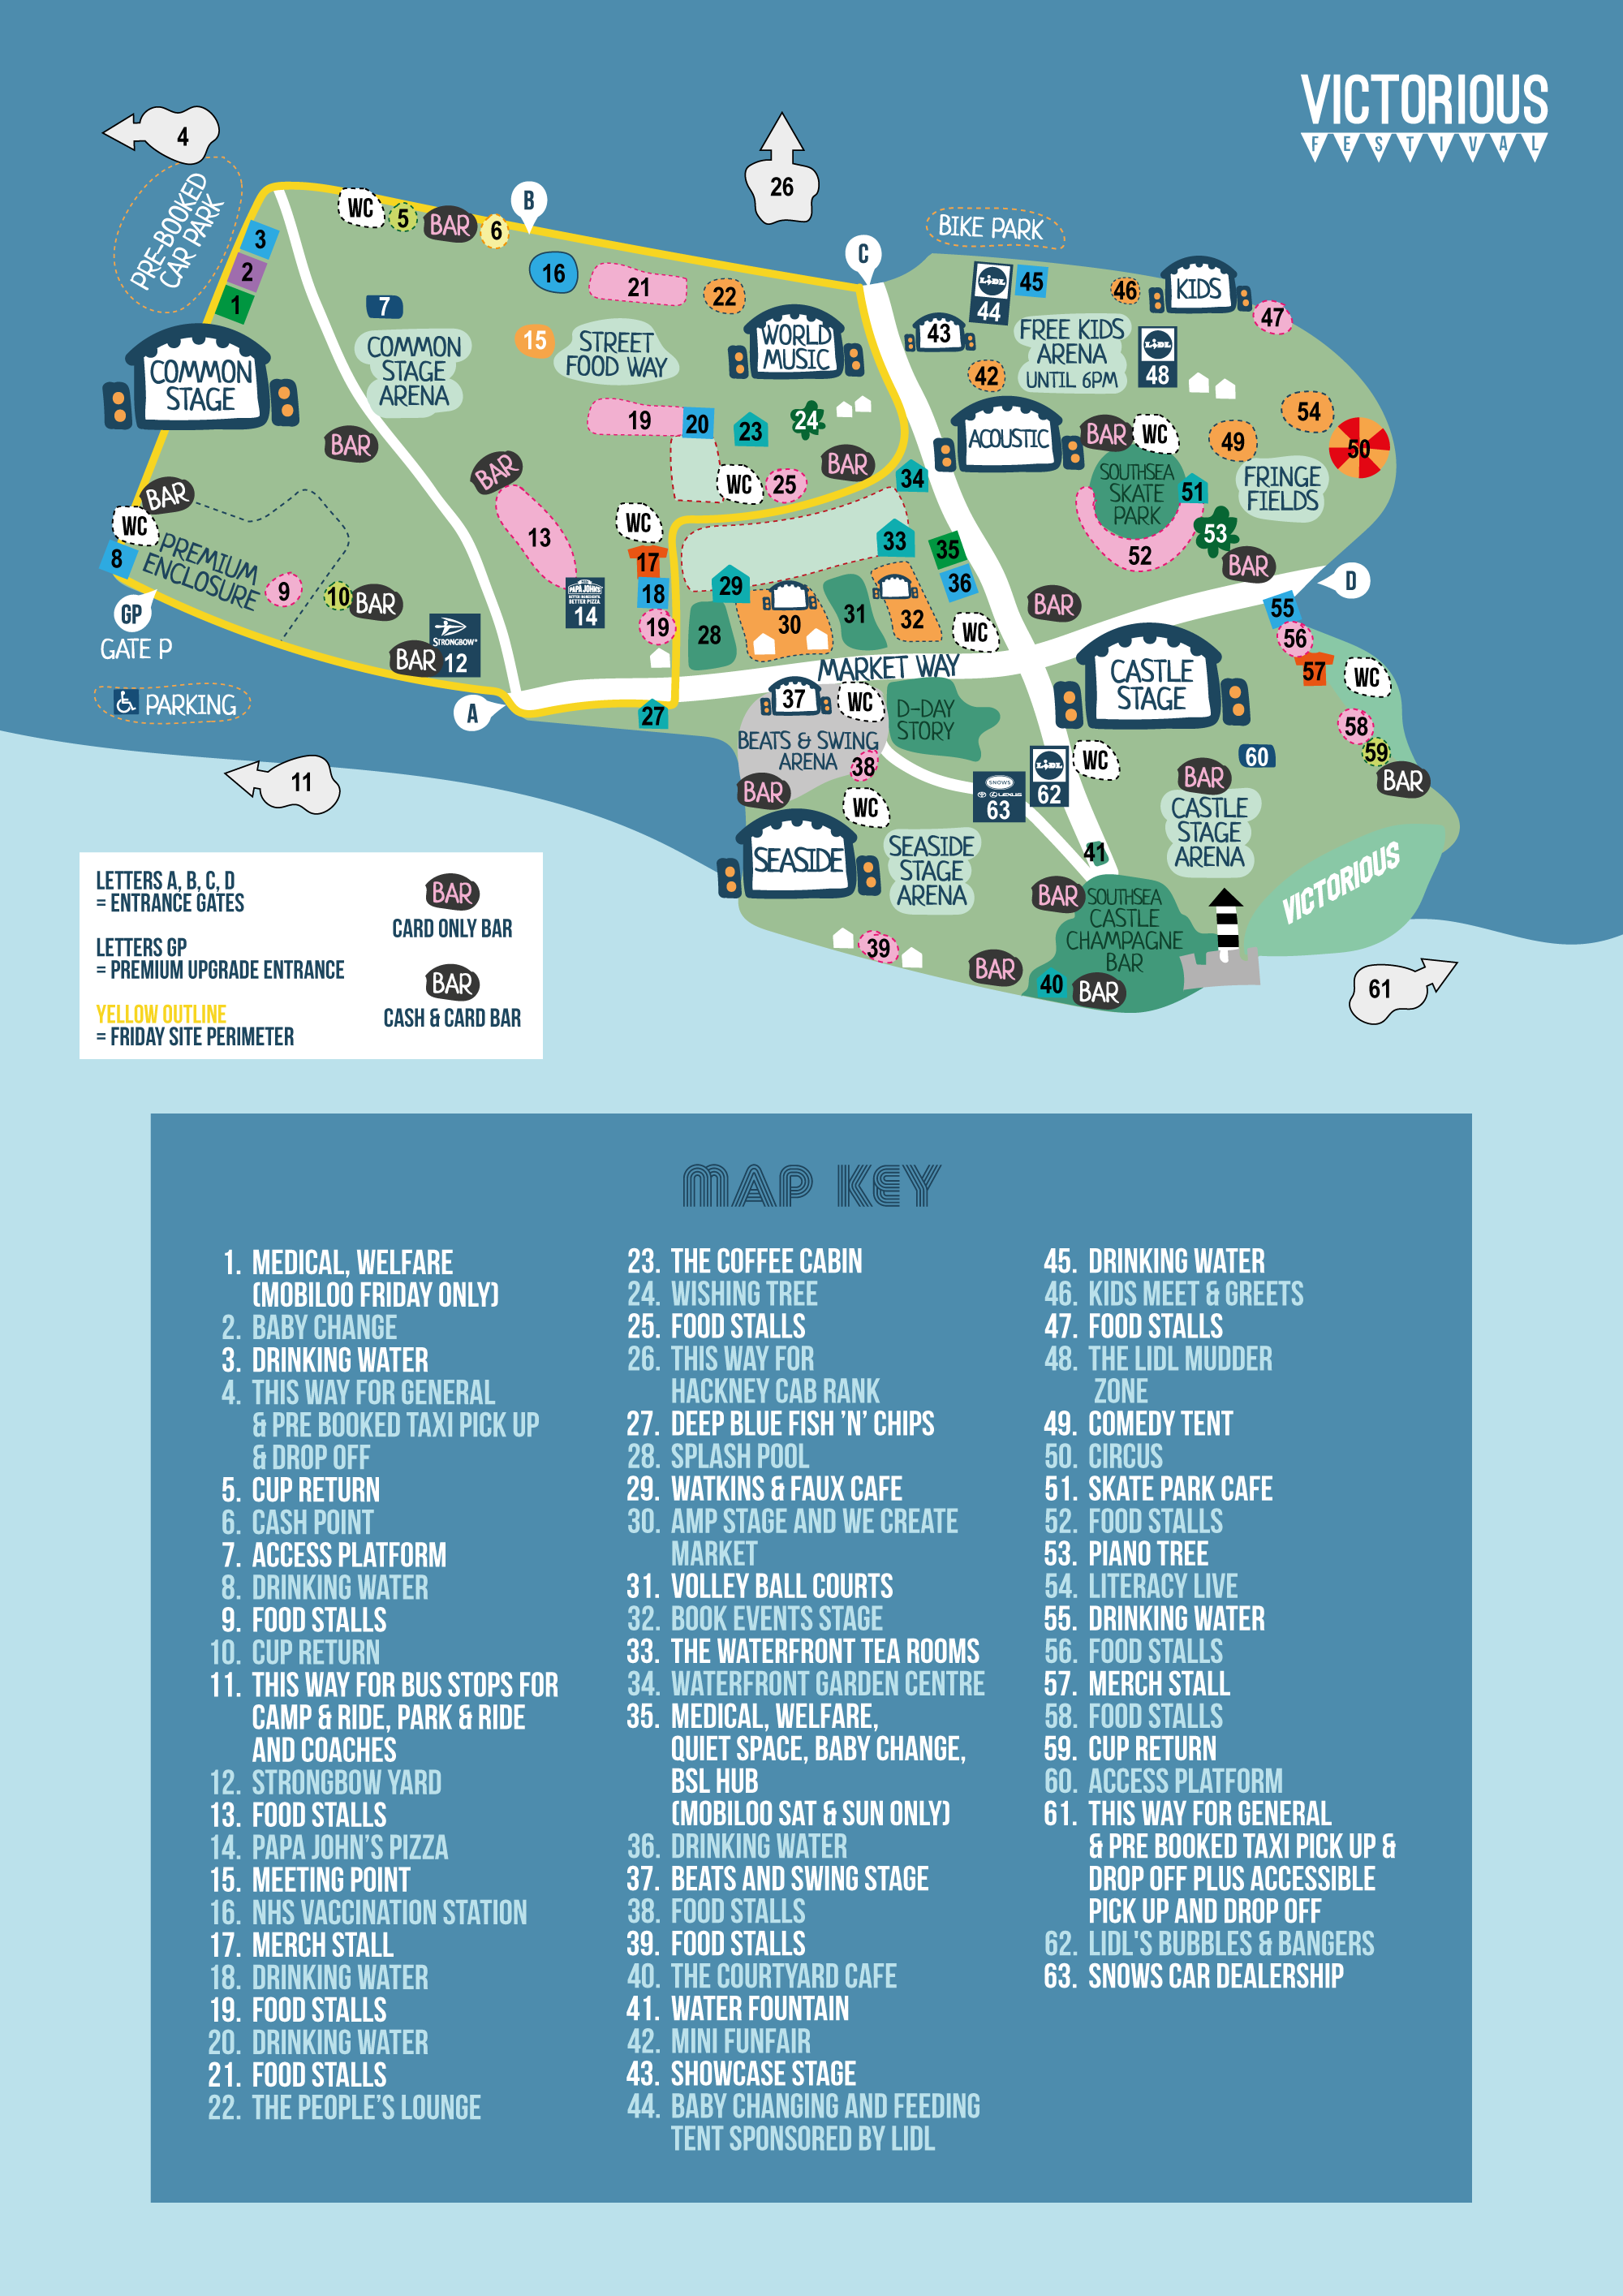 a map illustrating various stages, bars, toilets and other facilities that are at Victorious 2021. It is a cartoon style illustration.